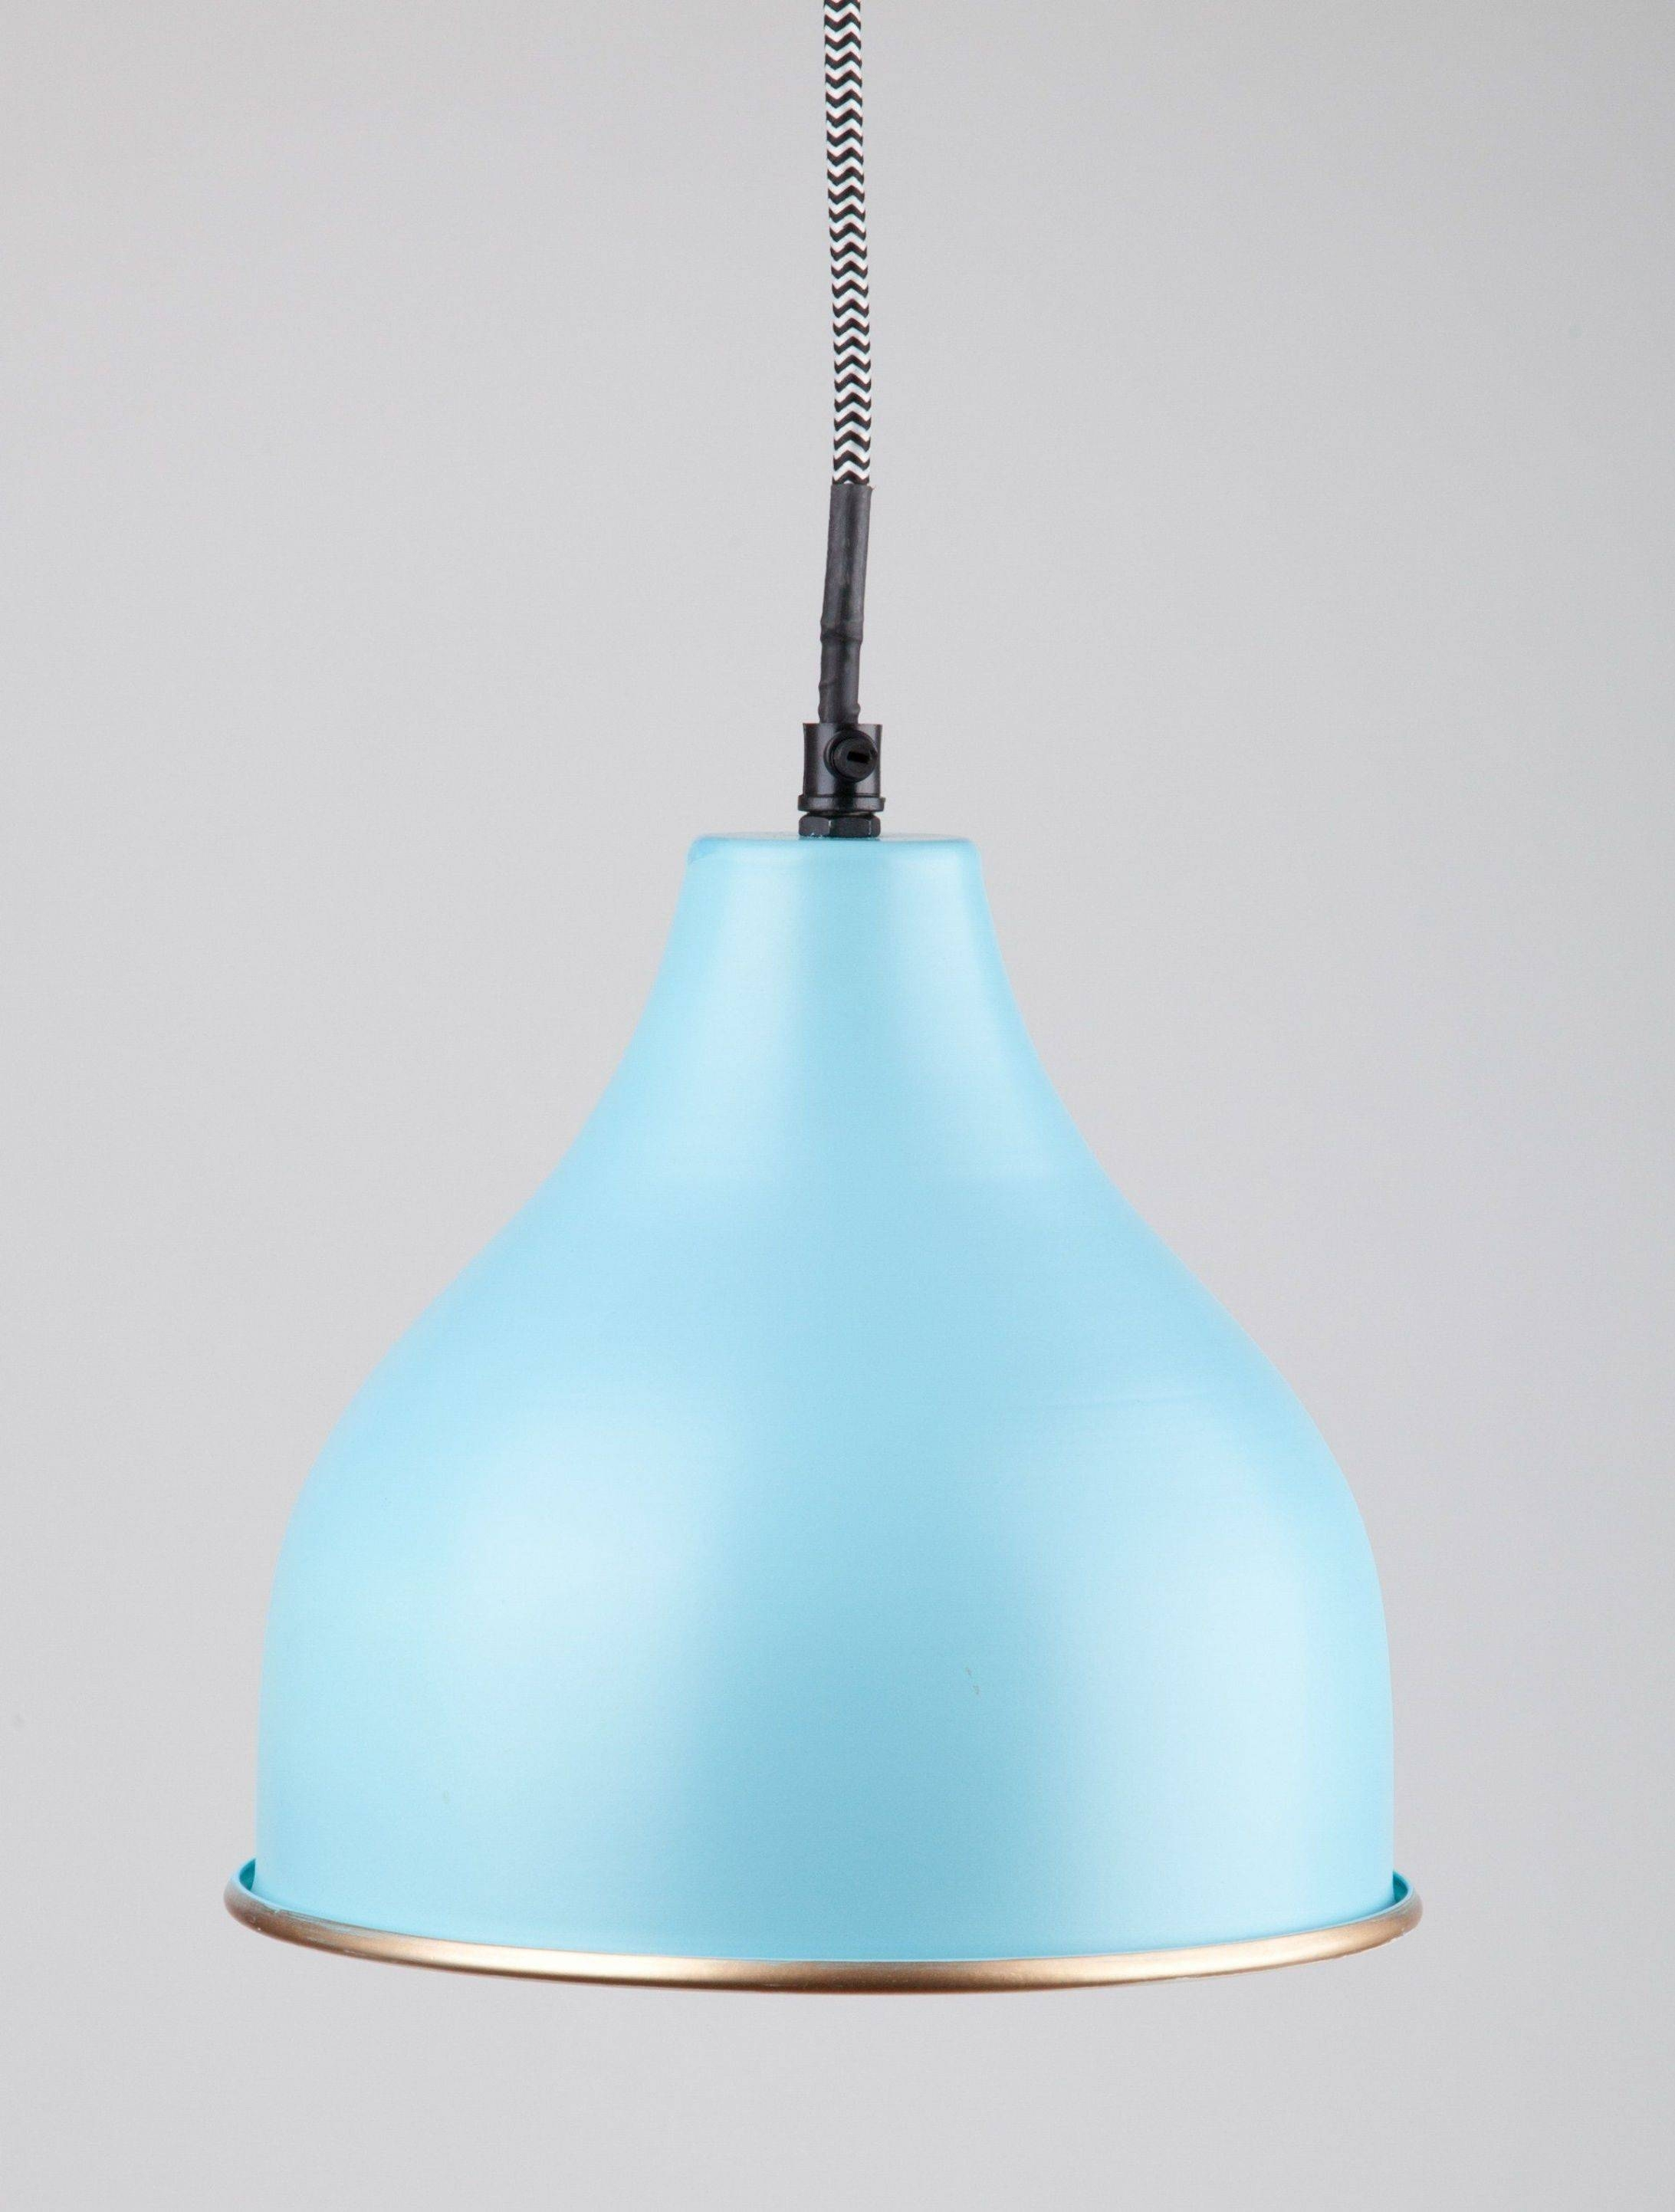 Home Lighting : Outstanding Moroccan Copper Pendant Light throughout Navy Pendant Lights (Image 7 of 15)